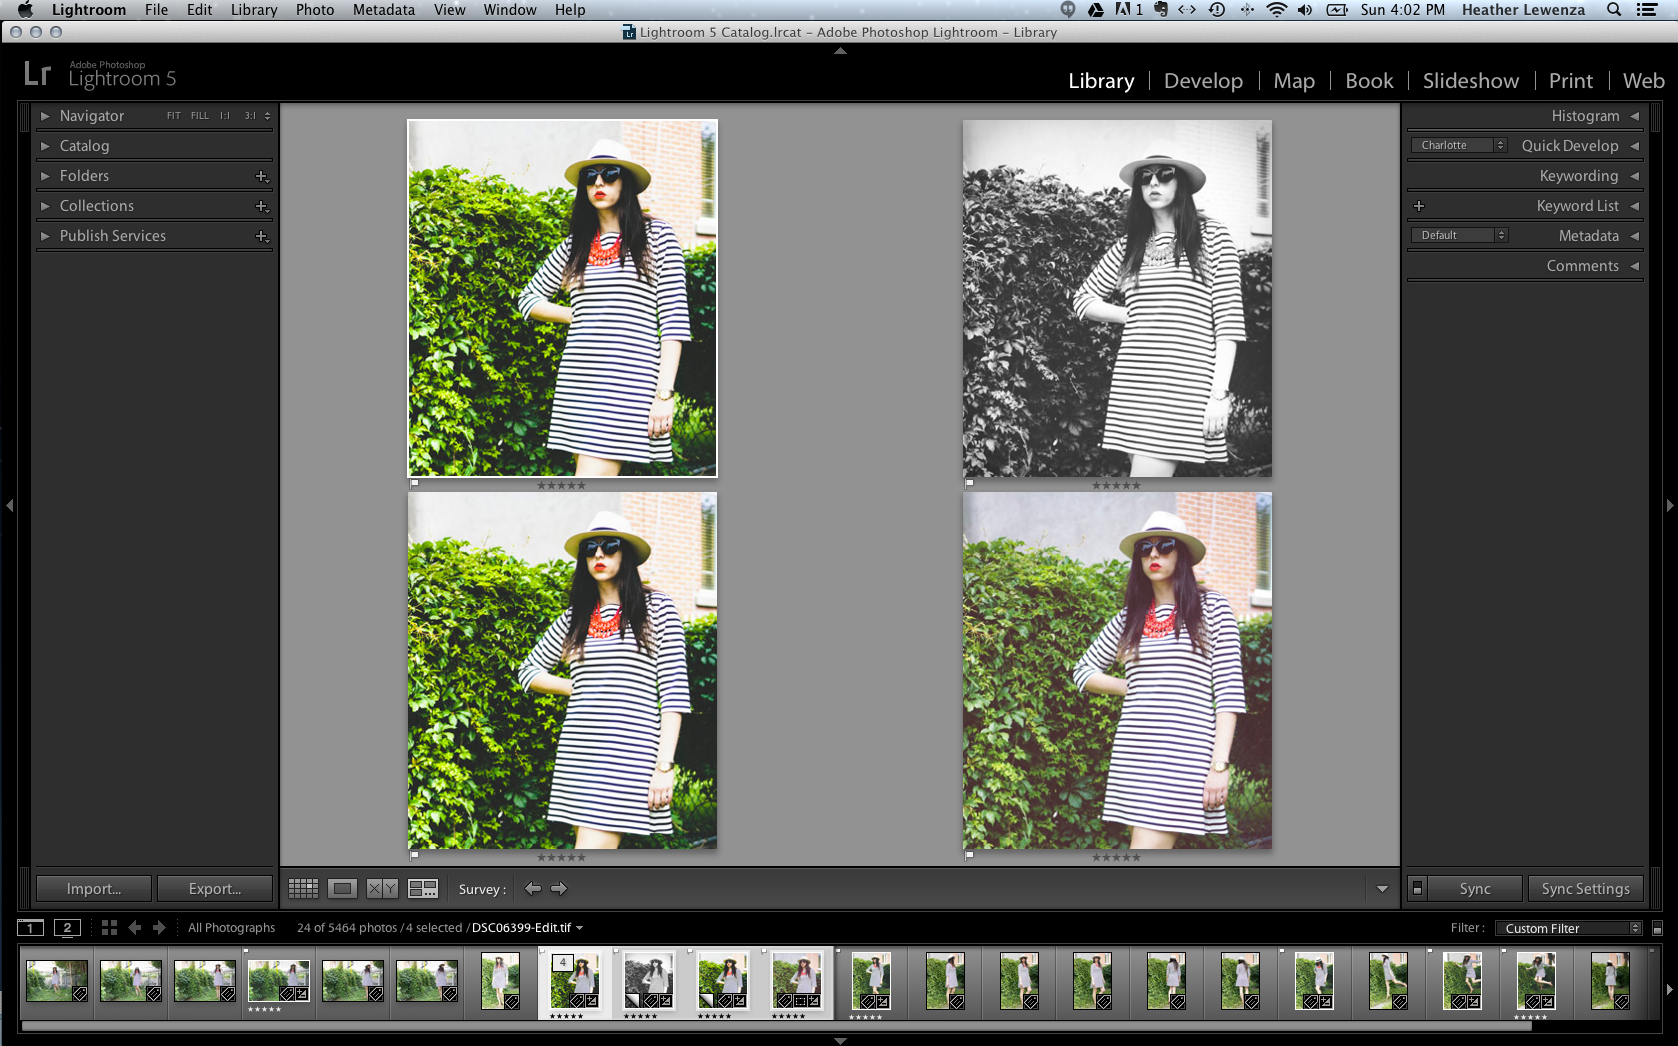 Closet Case Files: Editing photos with Lightroom